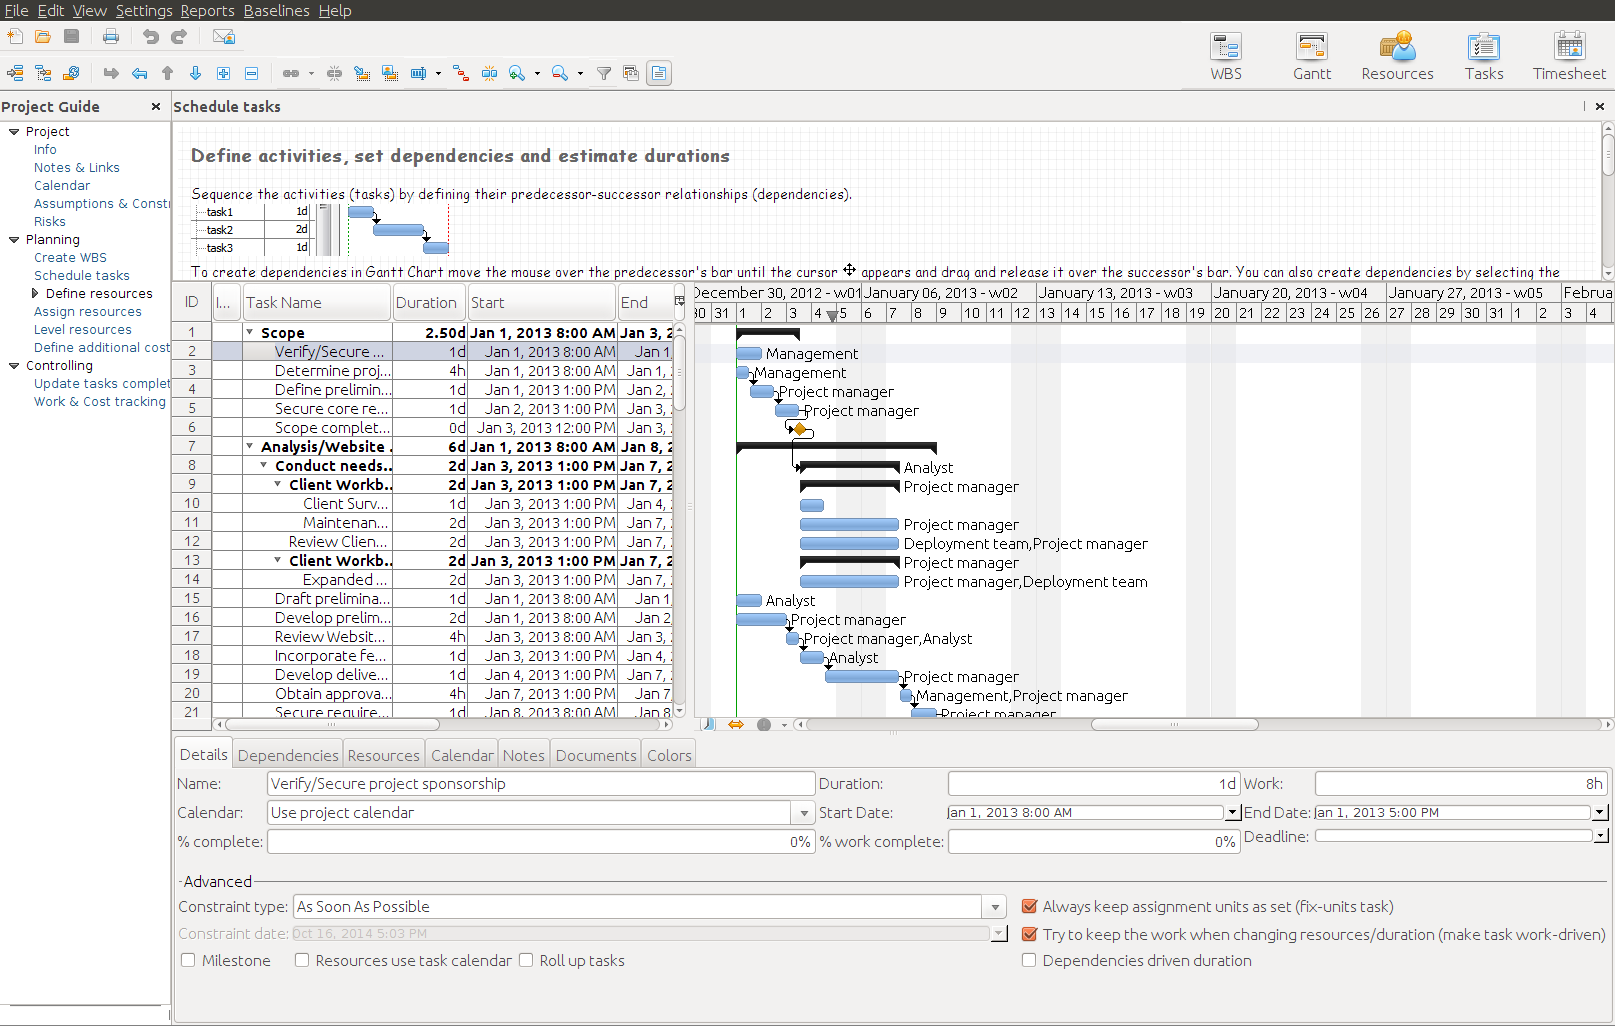 RationalPlan Single Project for Linux 4.16.0